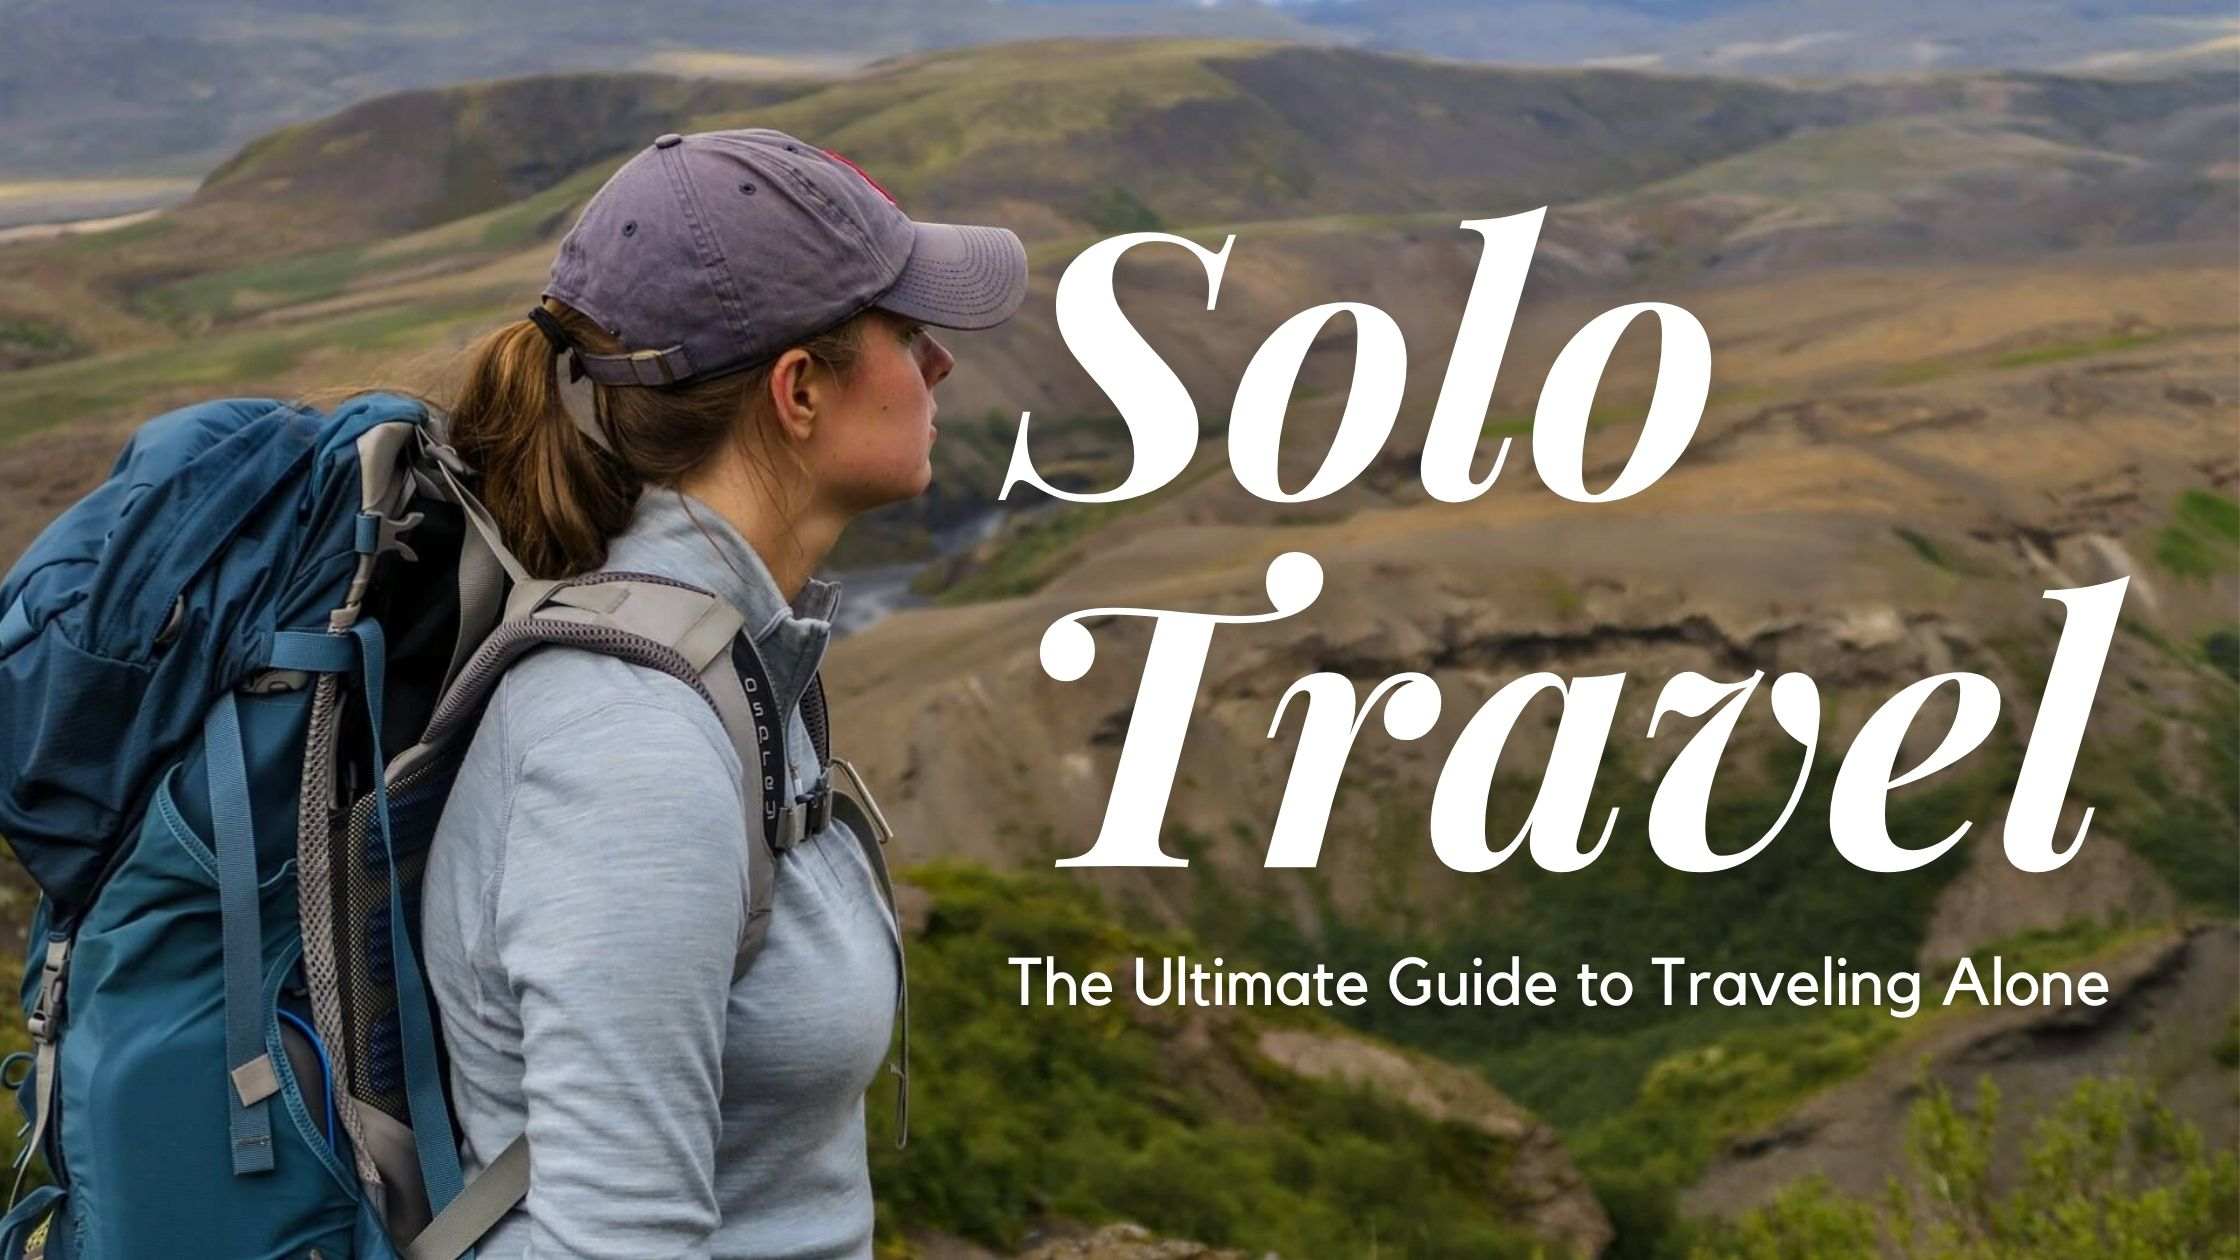 Solo Travel: The Ultimate Guide to Traveling Alone